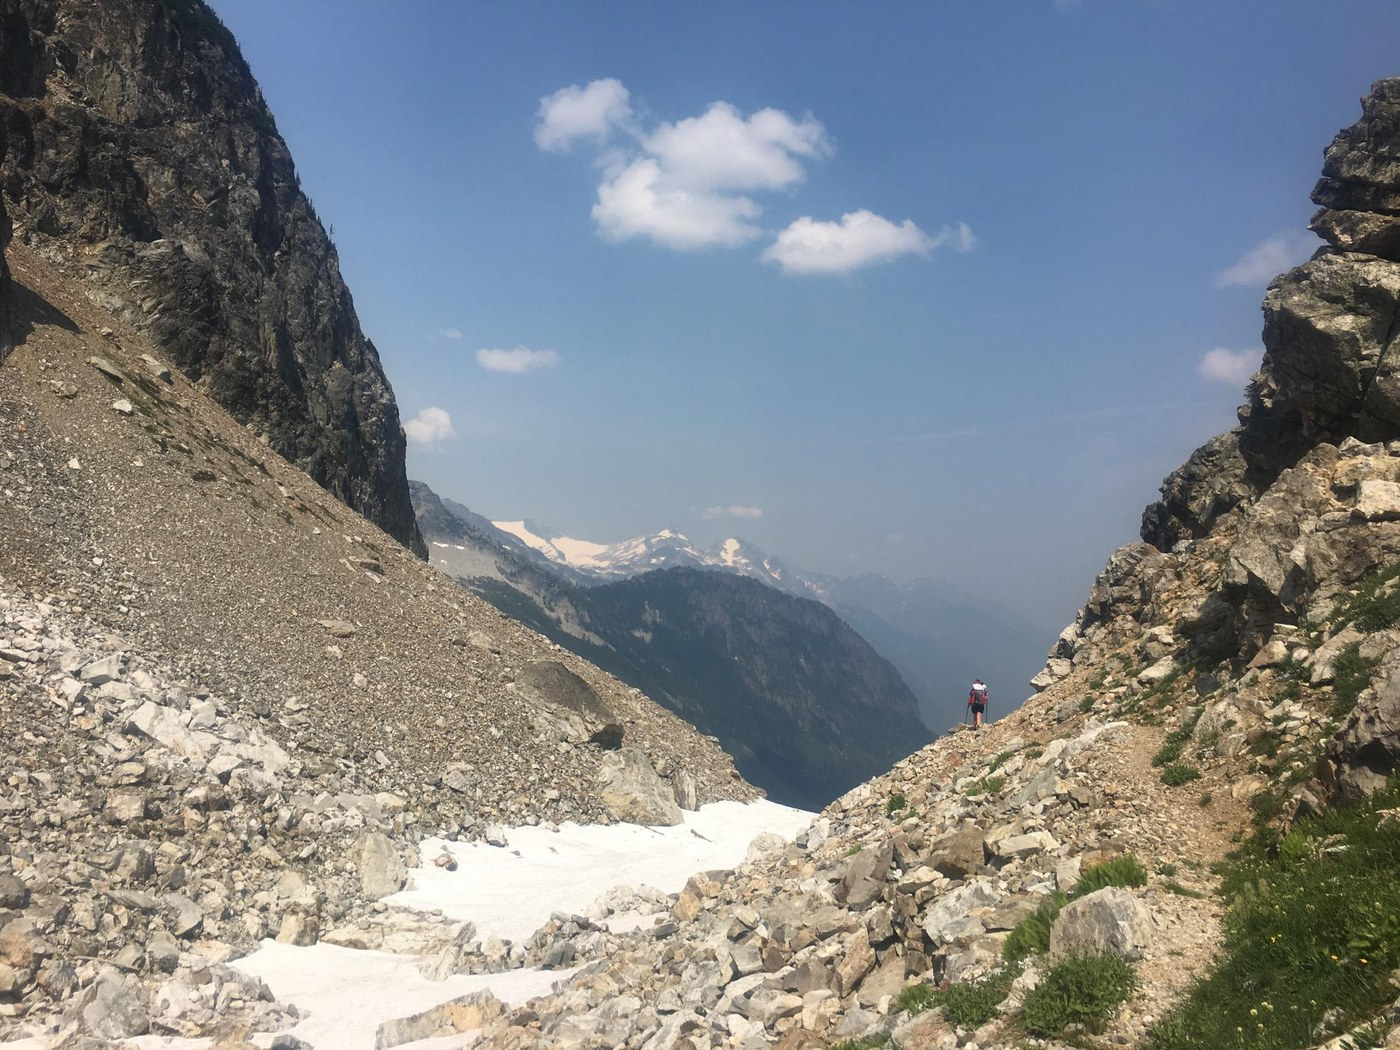 The view from Park Creek Pass opens up to reveal a long lush valley.